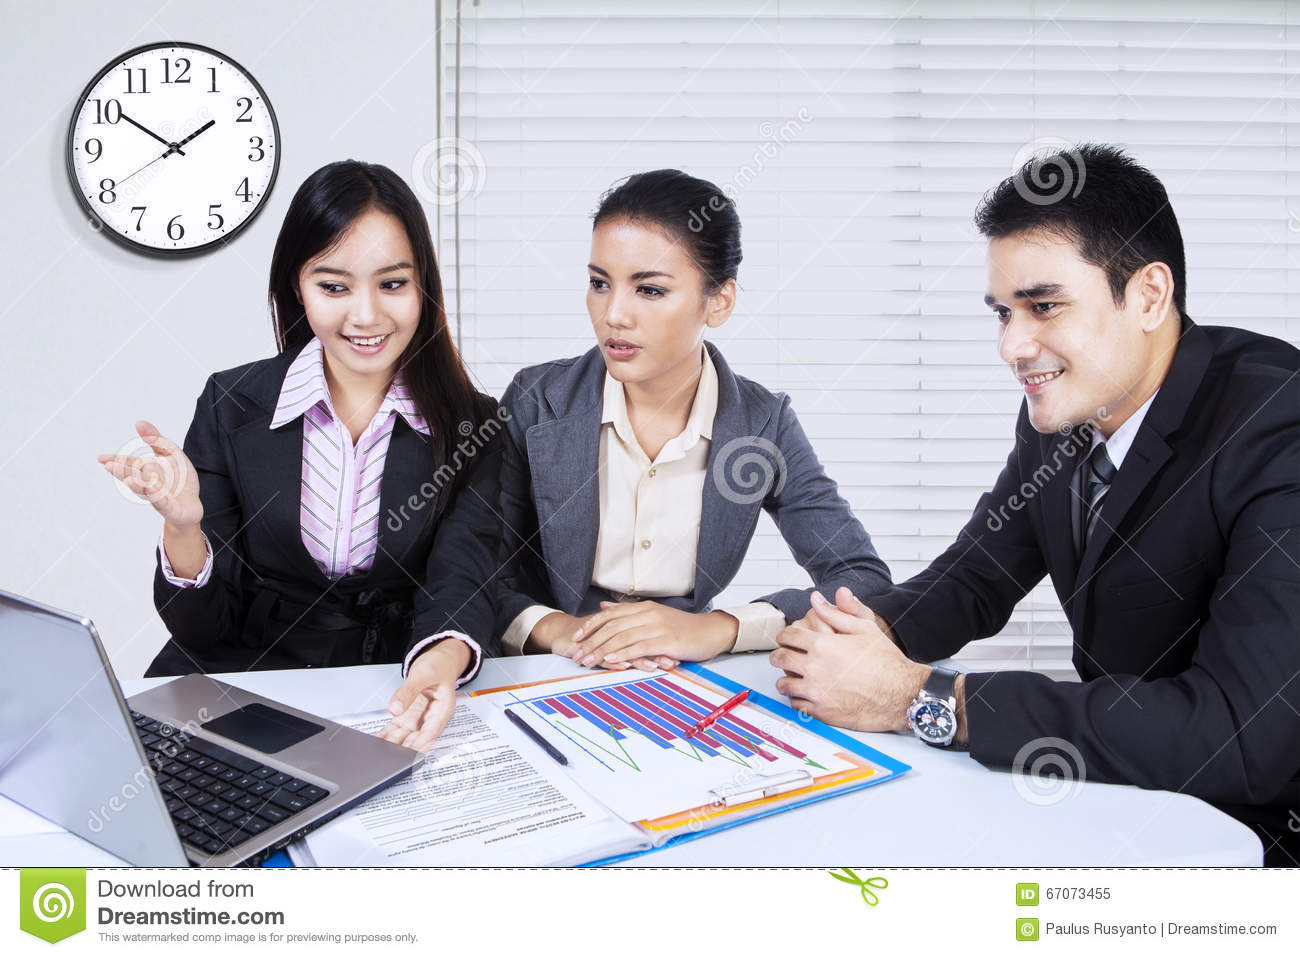 download female entrepreneur presenting business plan stock image image of finance asian 67073455